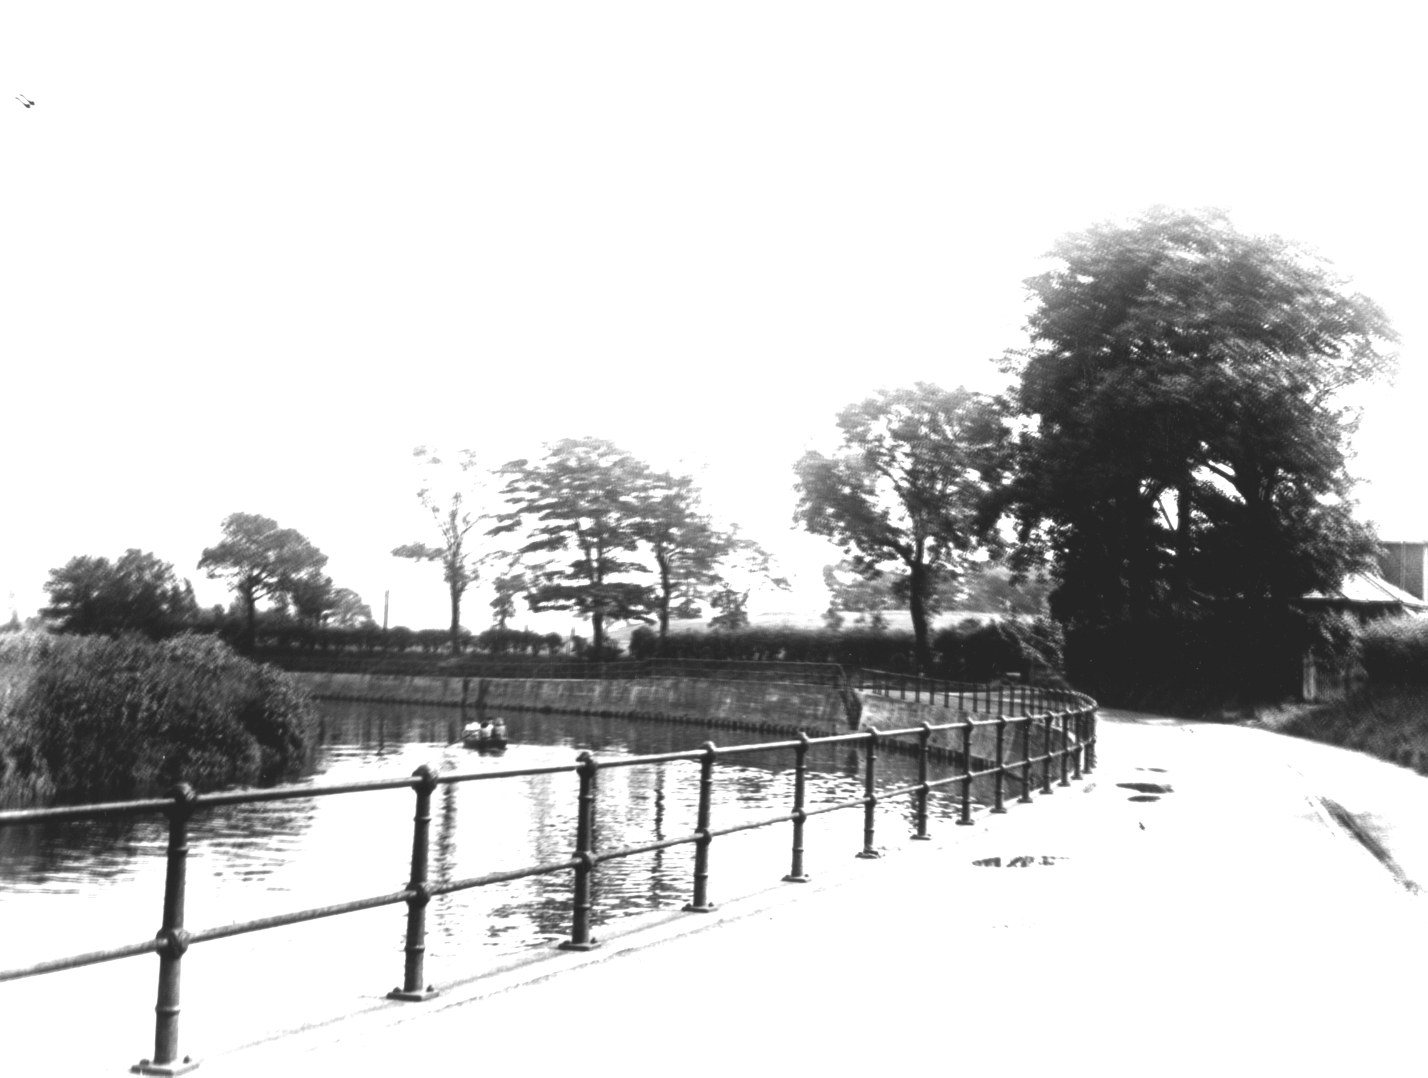 River Mersey, the southern end of the ford was approximatly where the railings are here on Ford Lane. 1947